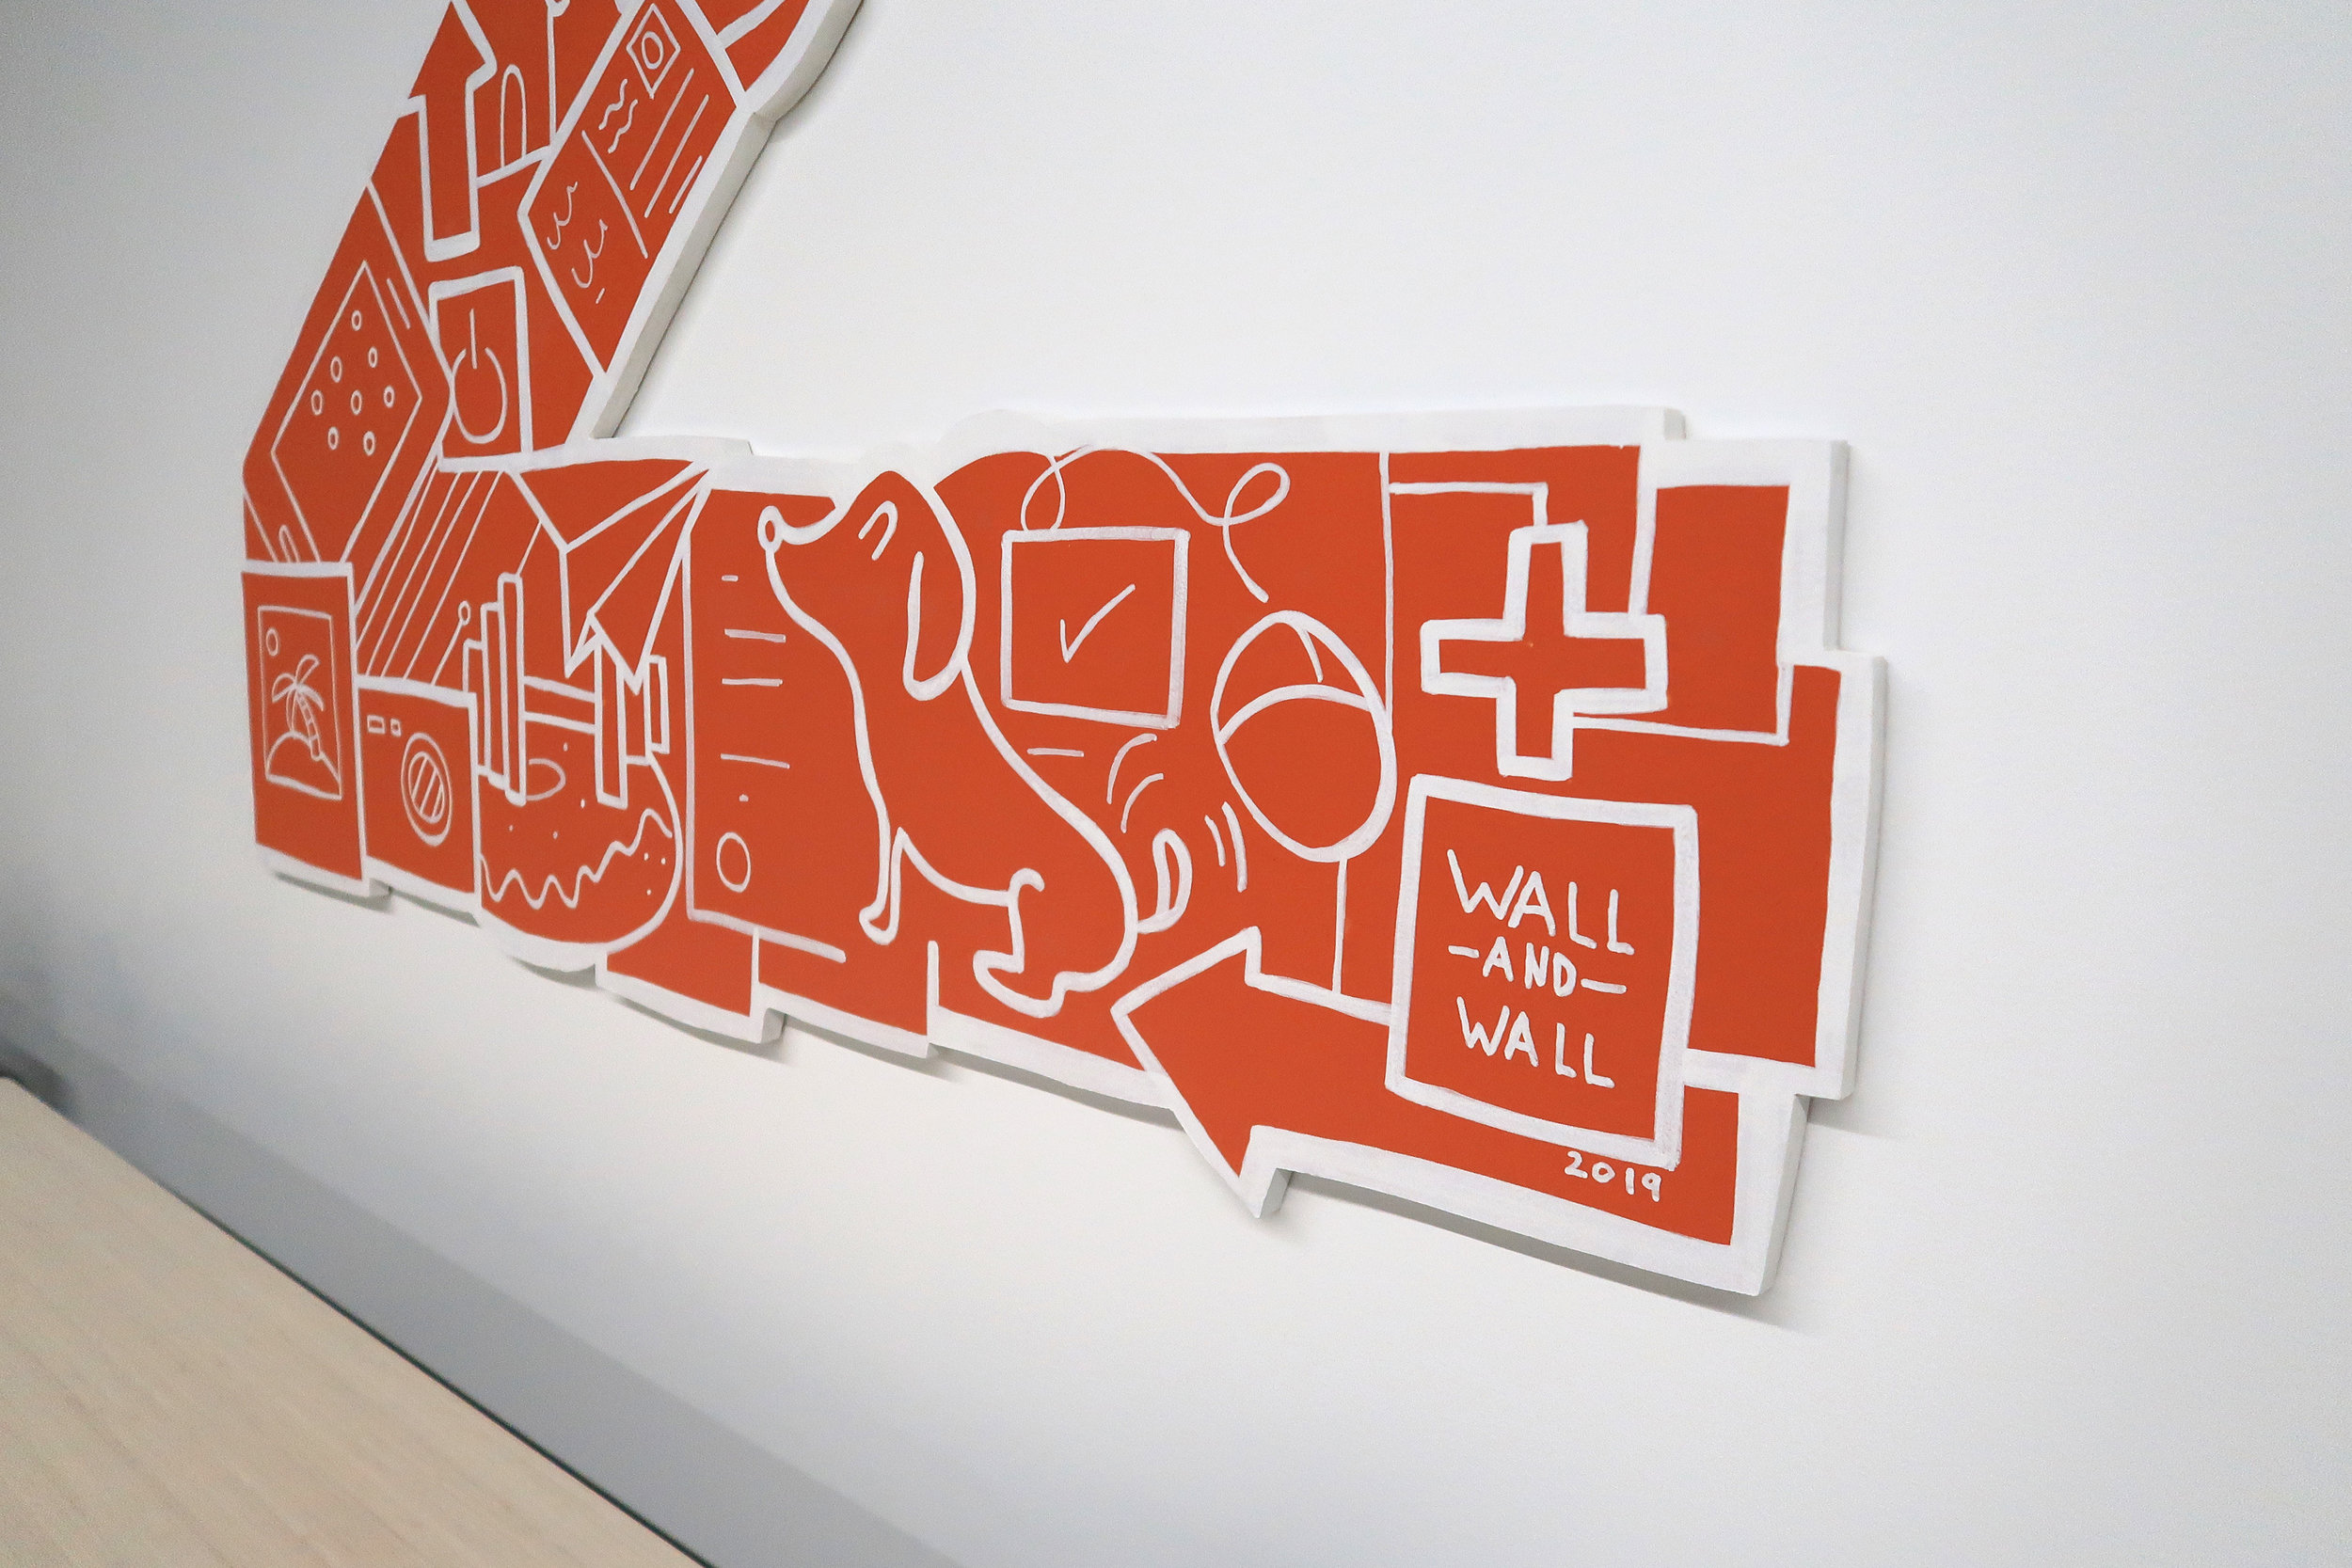 Office-commercial-mural-san-francisco-brex-alcove-wall-and-wall-mural-company_003.jpeg